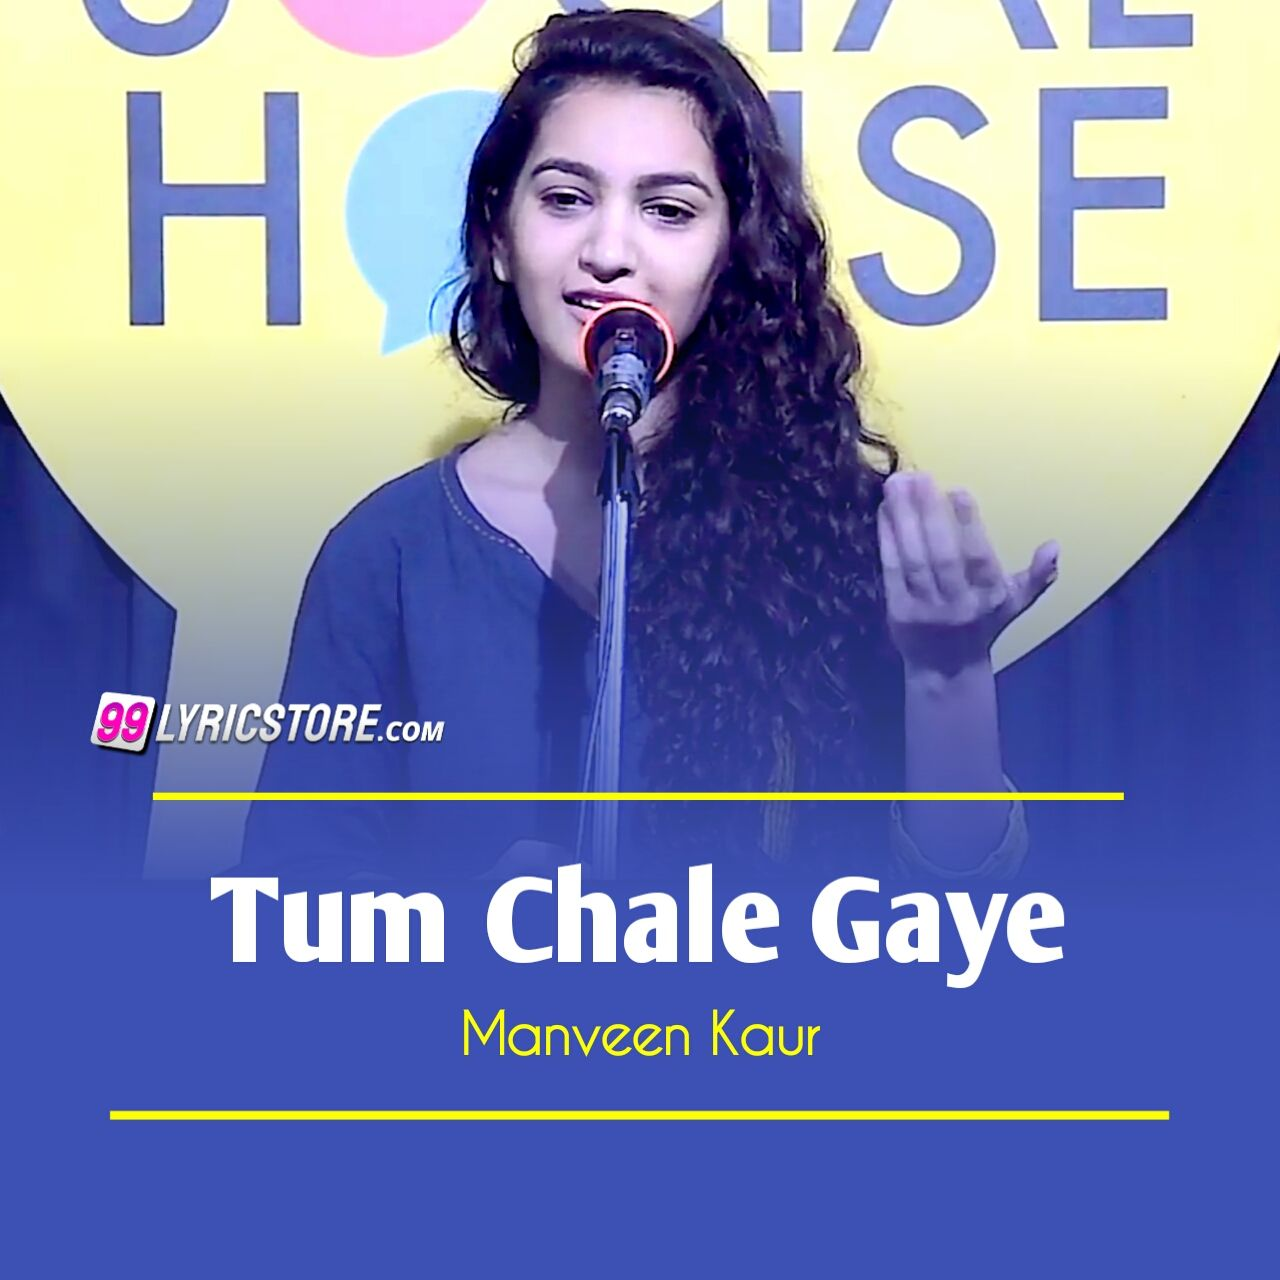 'Tum Chale Gaye' Poetry has written and performed by Manveen Kaur on The Social House's Platform.